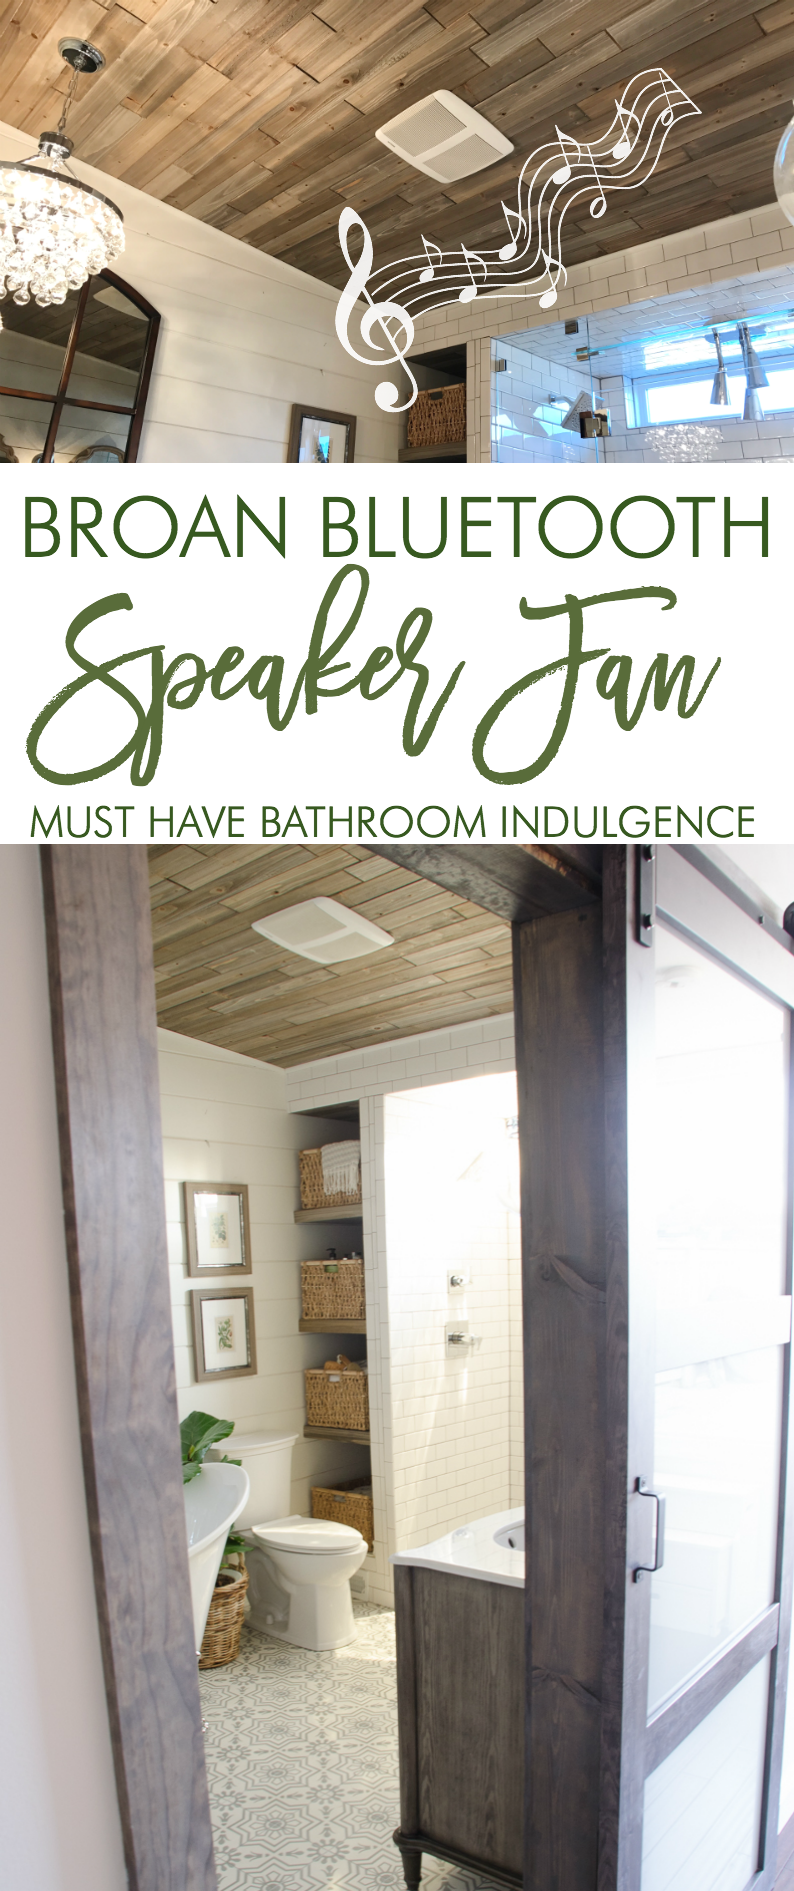 broan sensonic bath fan: must have bathroom indulgence